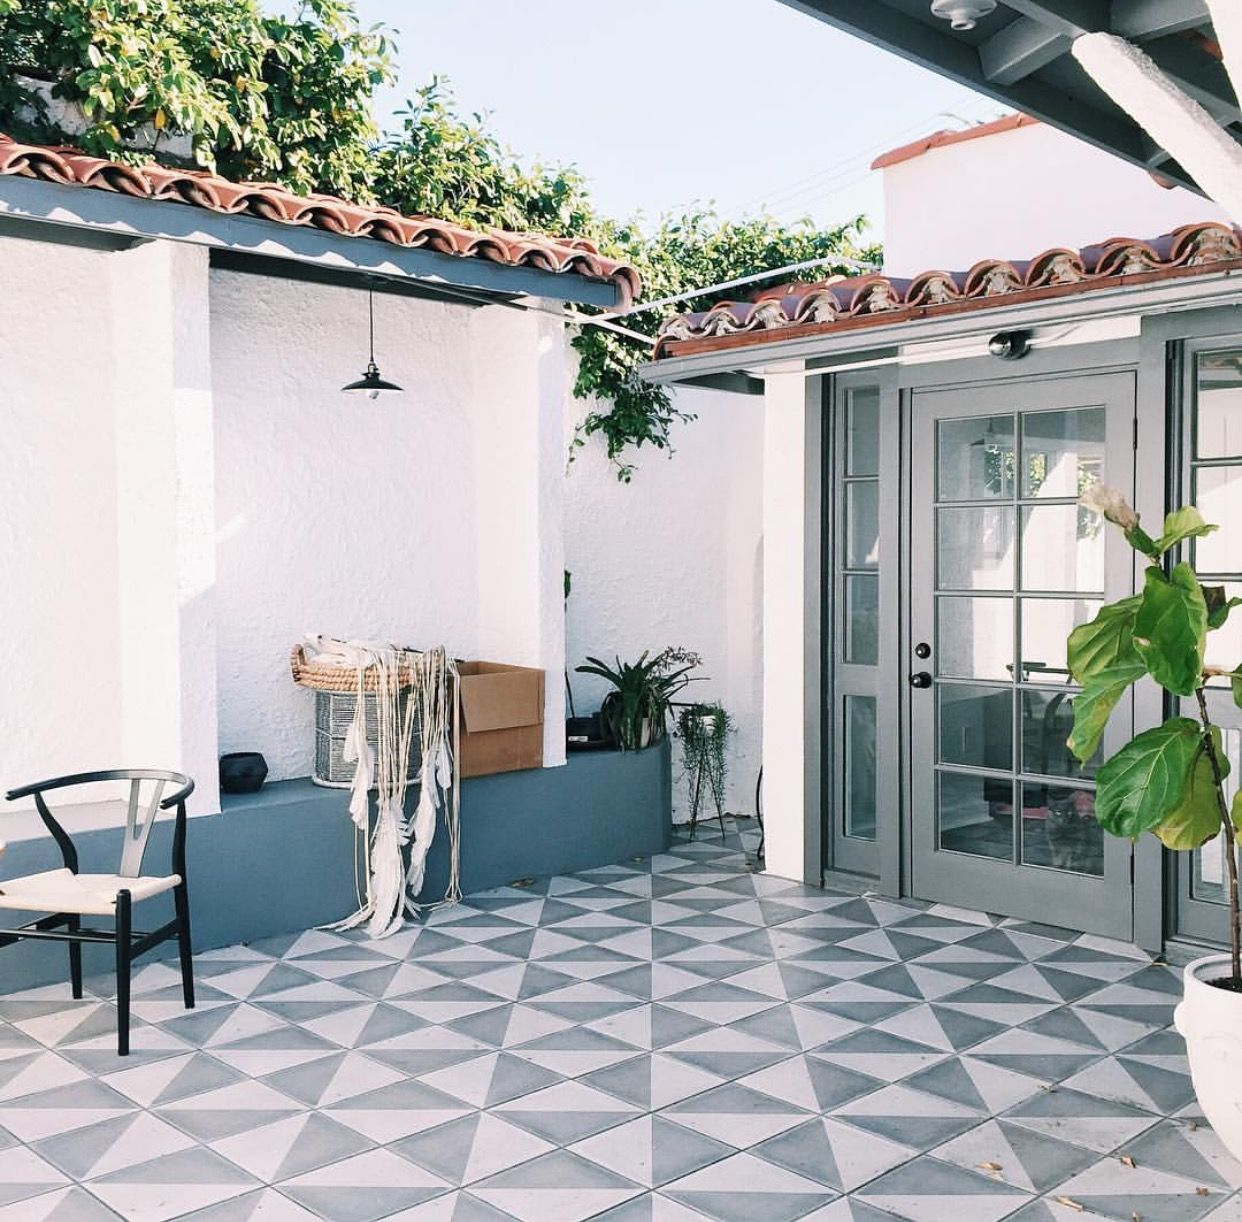 Exterior Wall Tiles Designs Indian Houses Single Floor: Pin By Chelsea Anthony On Backyard